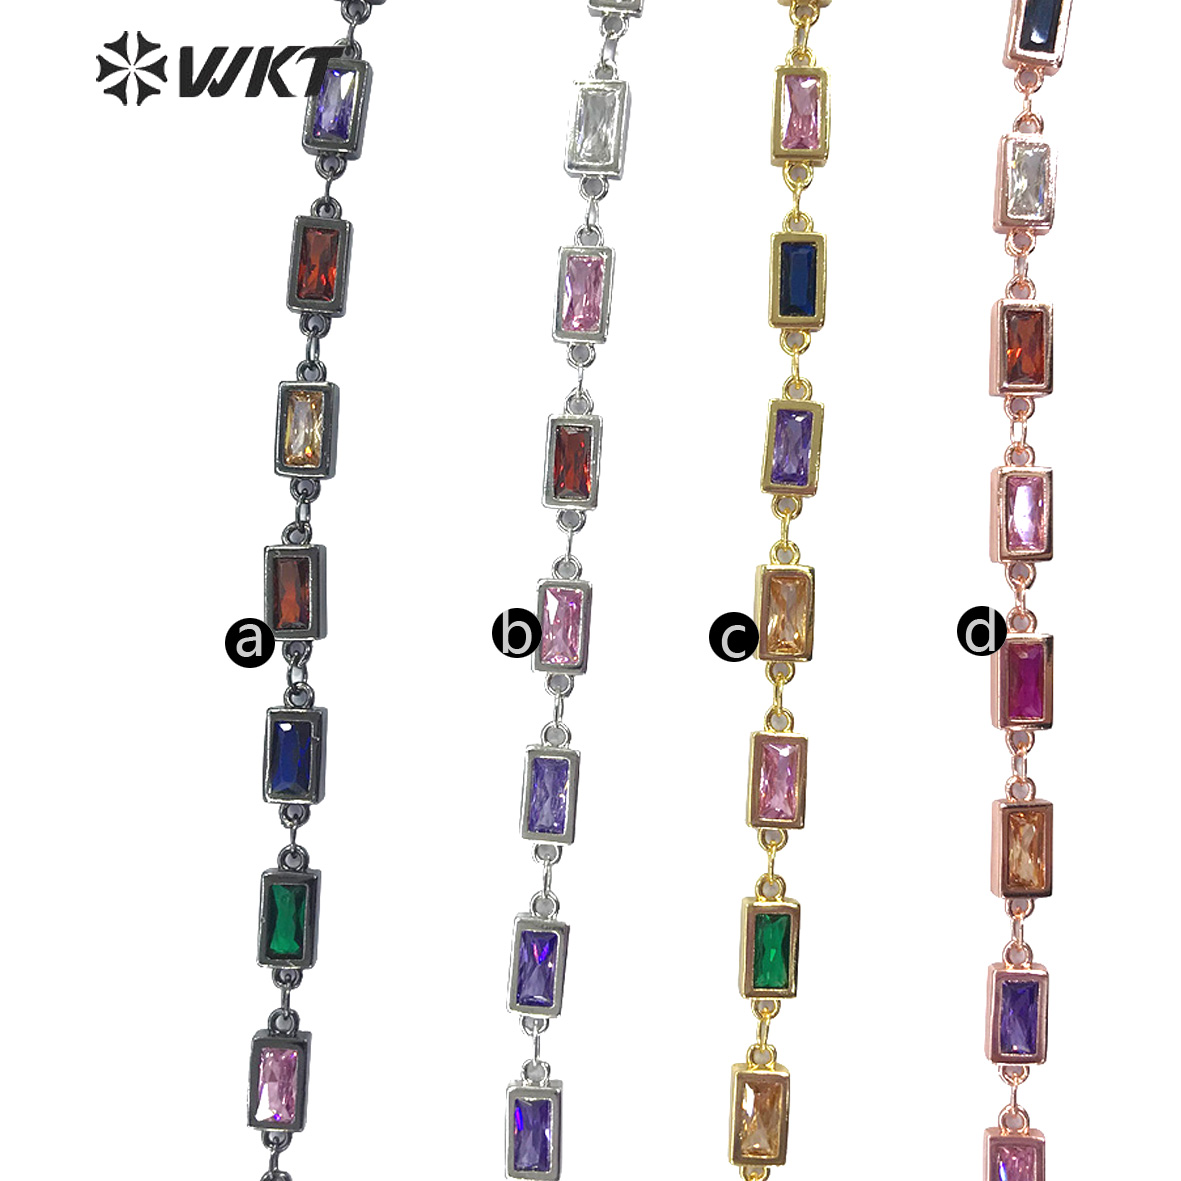 WT-BC122 WKT Multicolor Optional Chain Square Cubic Zircon Chain 5 Meter Fashion Brass Chain For Women Stylish Jewelry Making